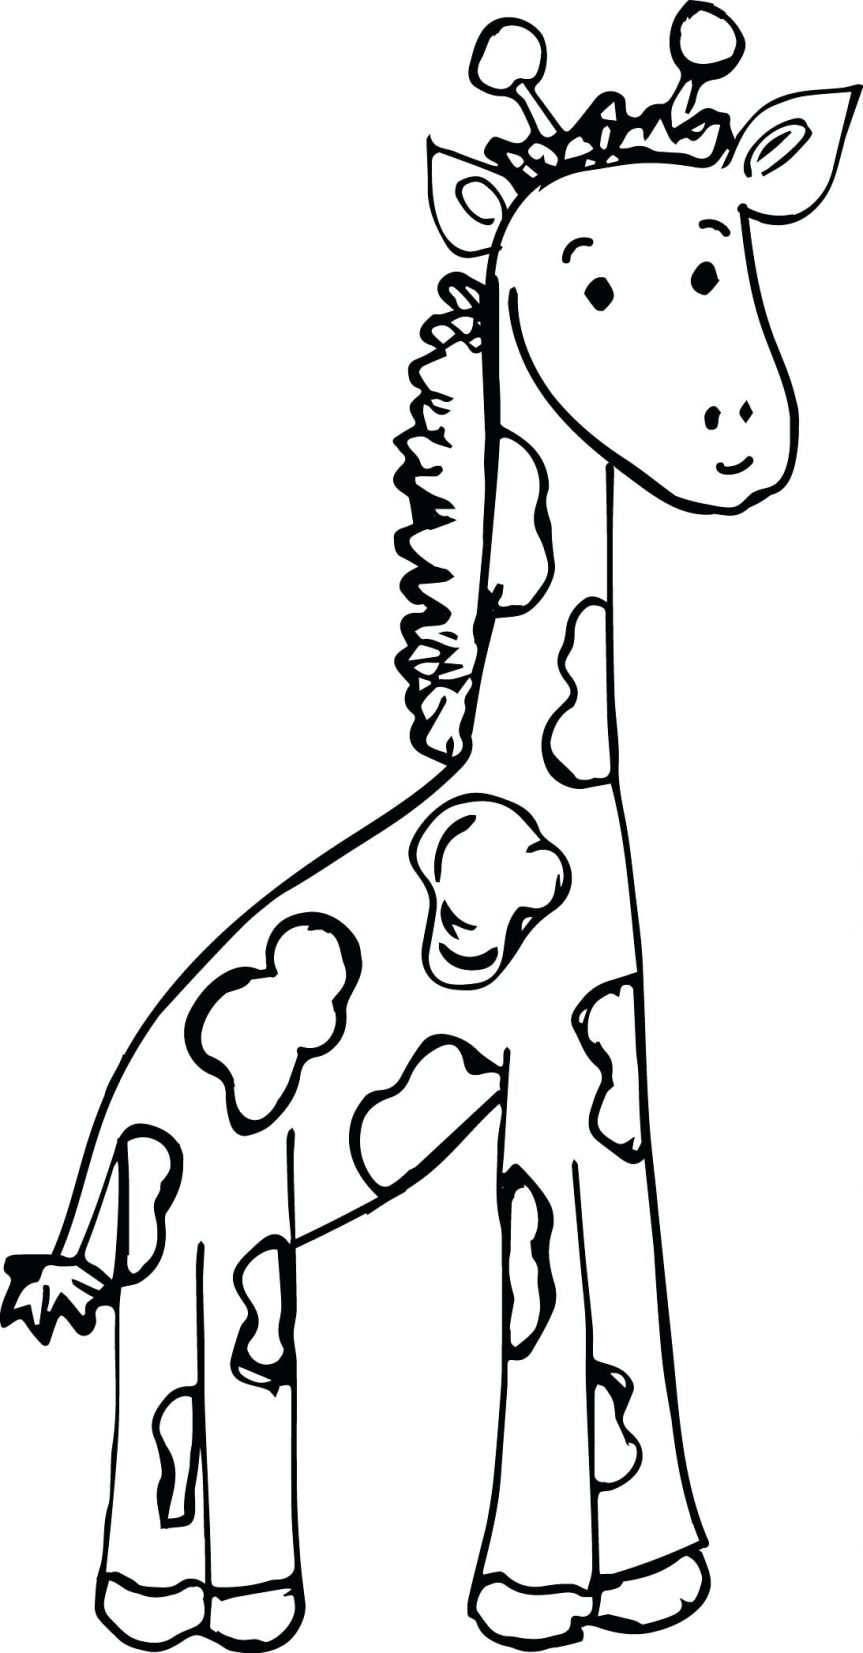 Giraffe Face Drawing At Getdrawings Free For Personal Use